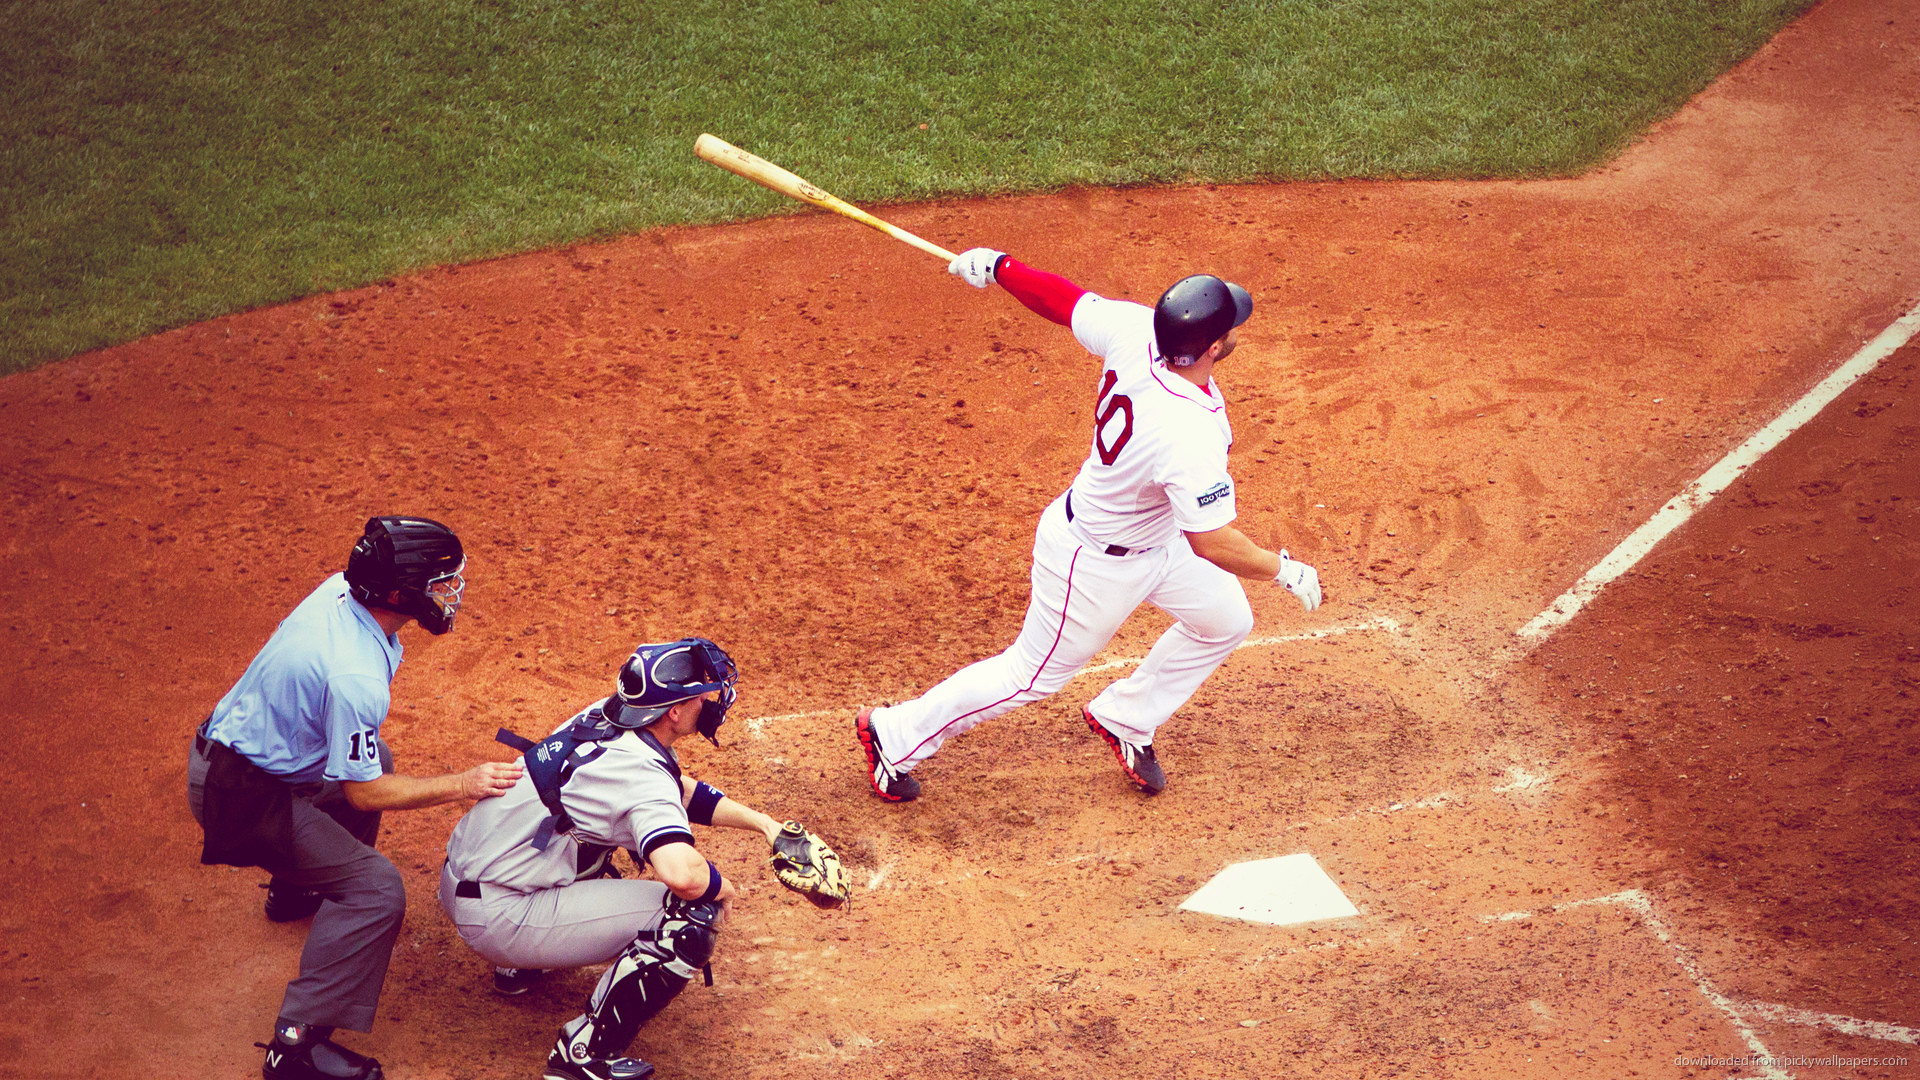 Red Sox vs Yankees Game picture